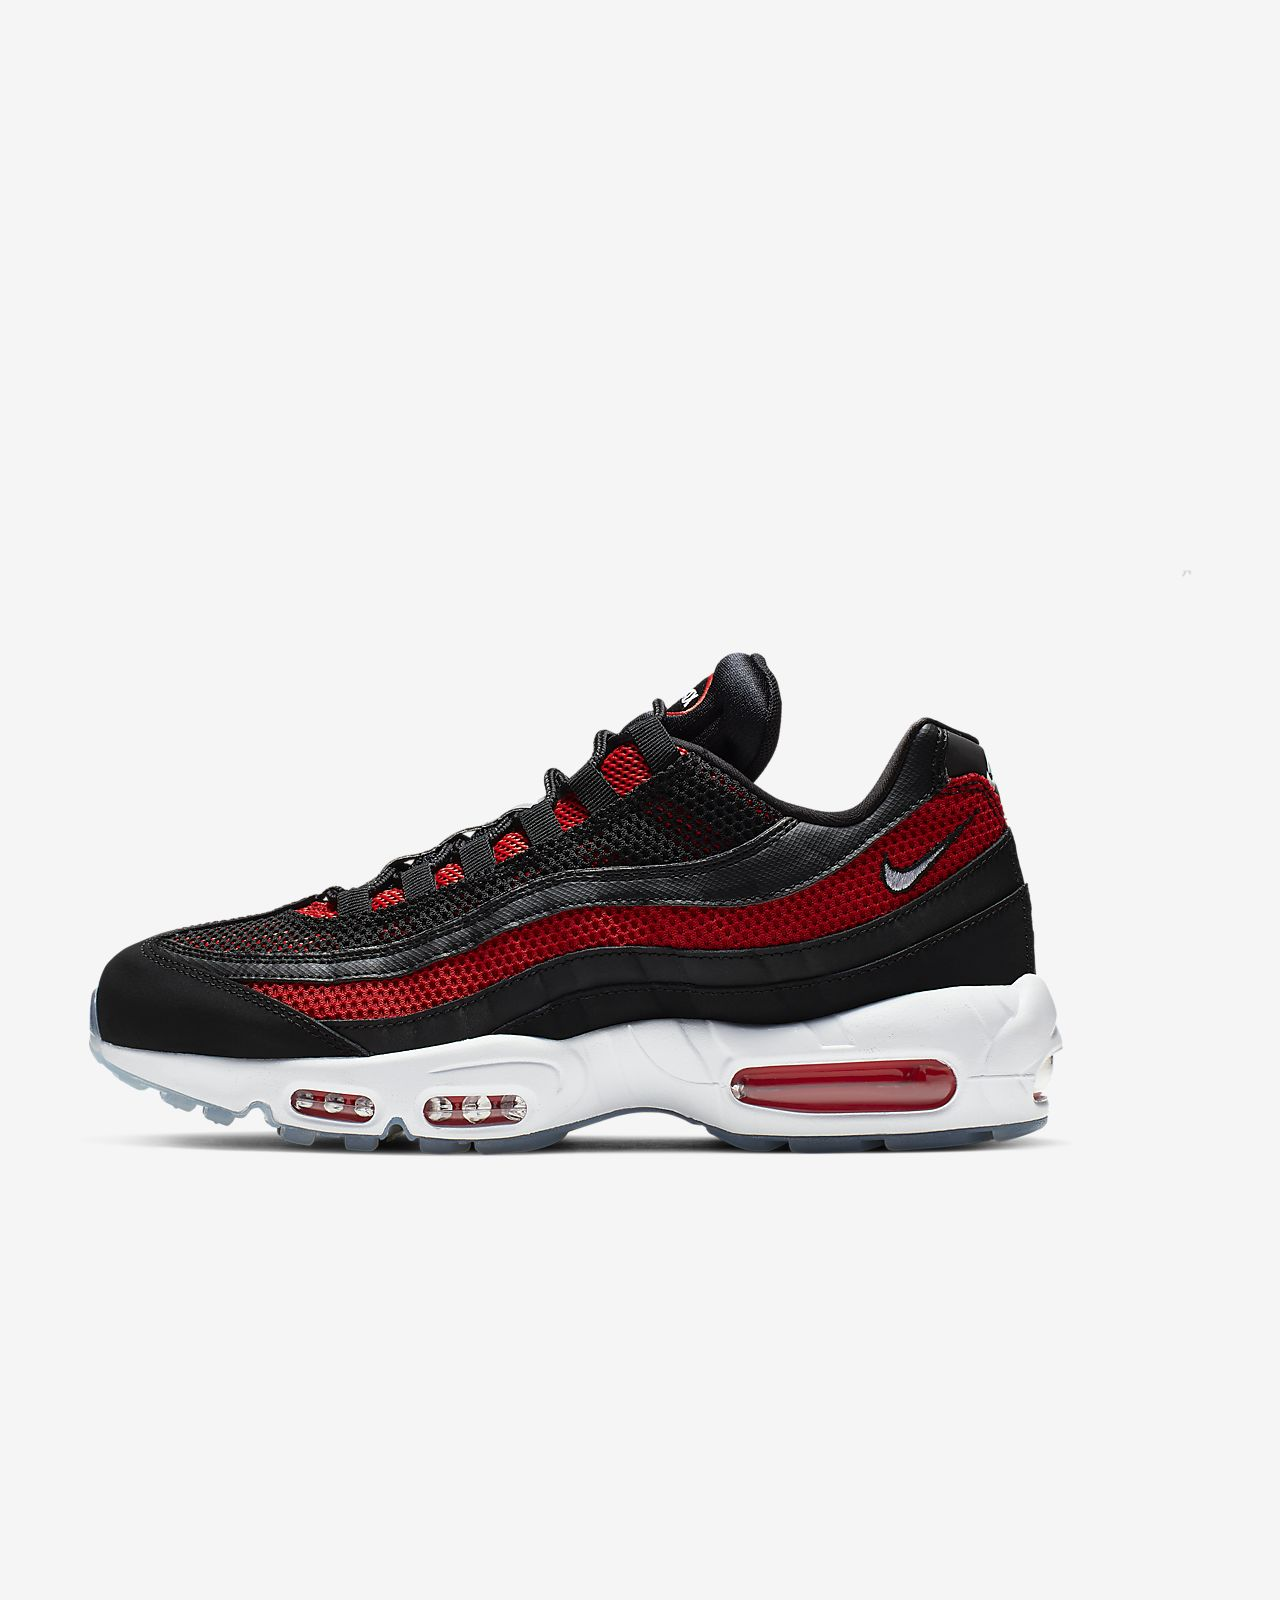 4aaba952f98 Nike Air Max 95 Essential Men s Shoe. Nike.com